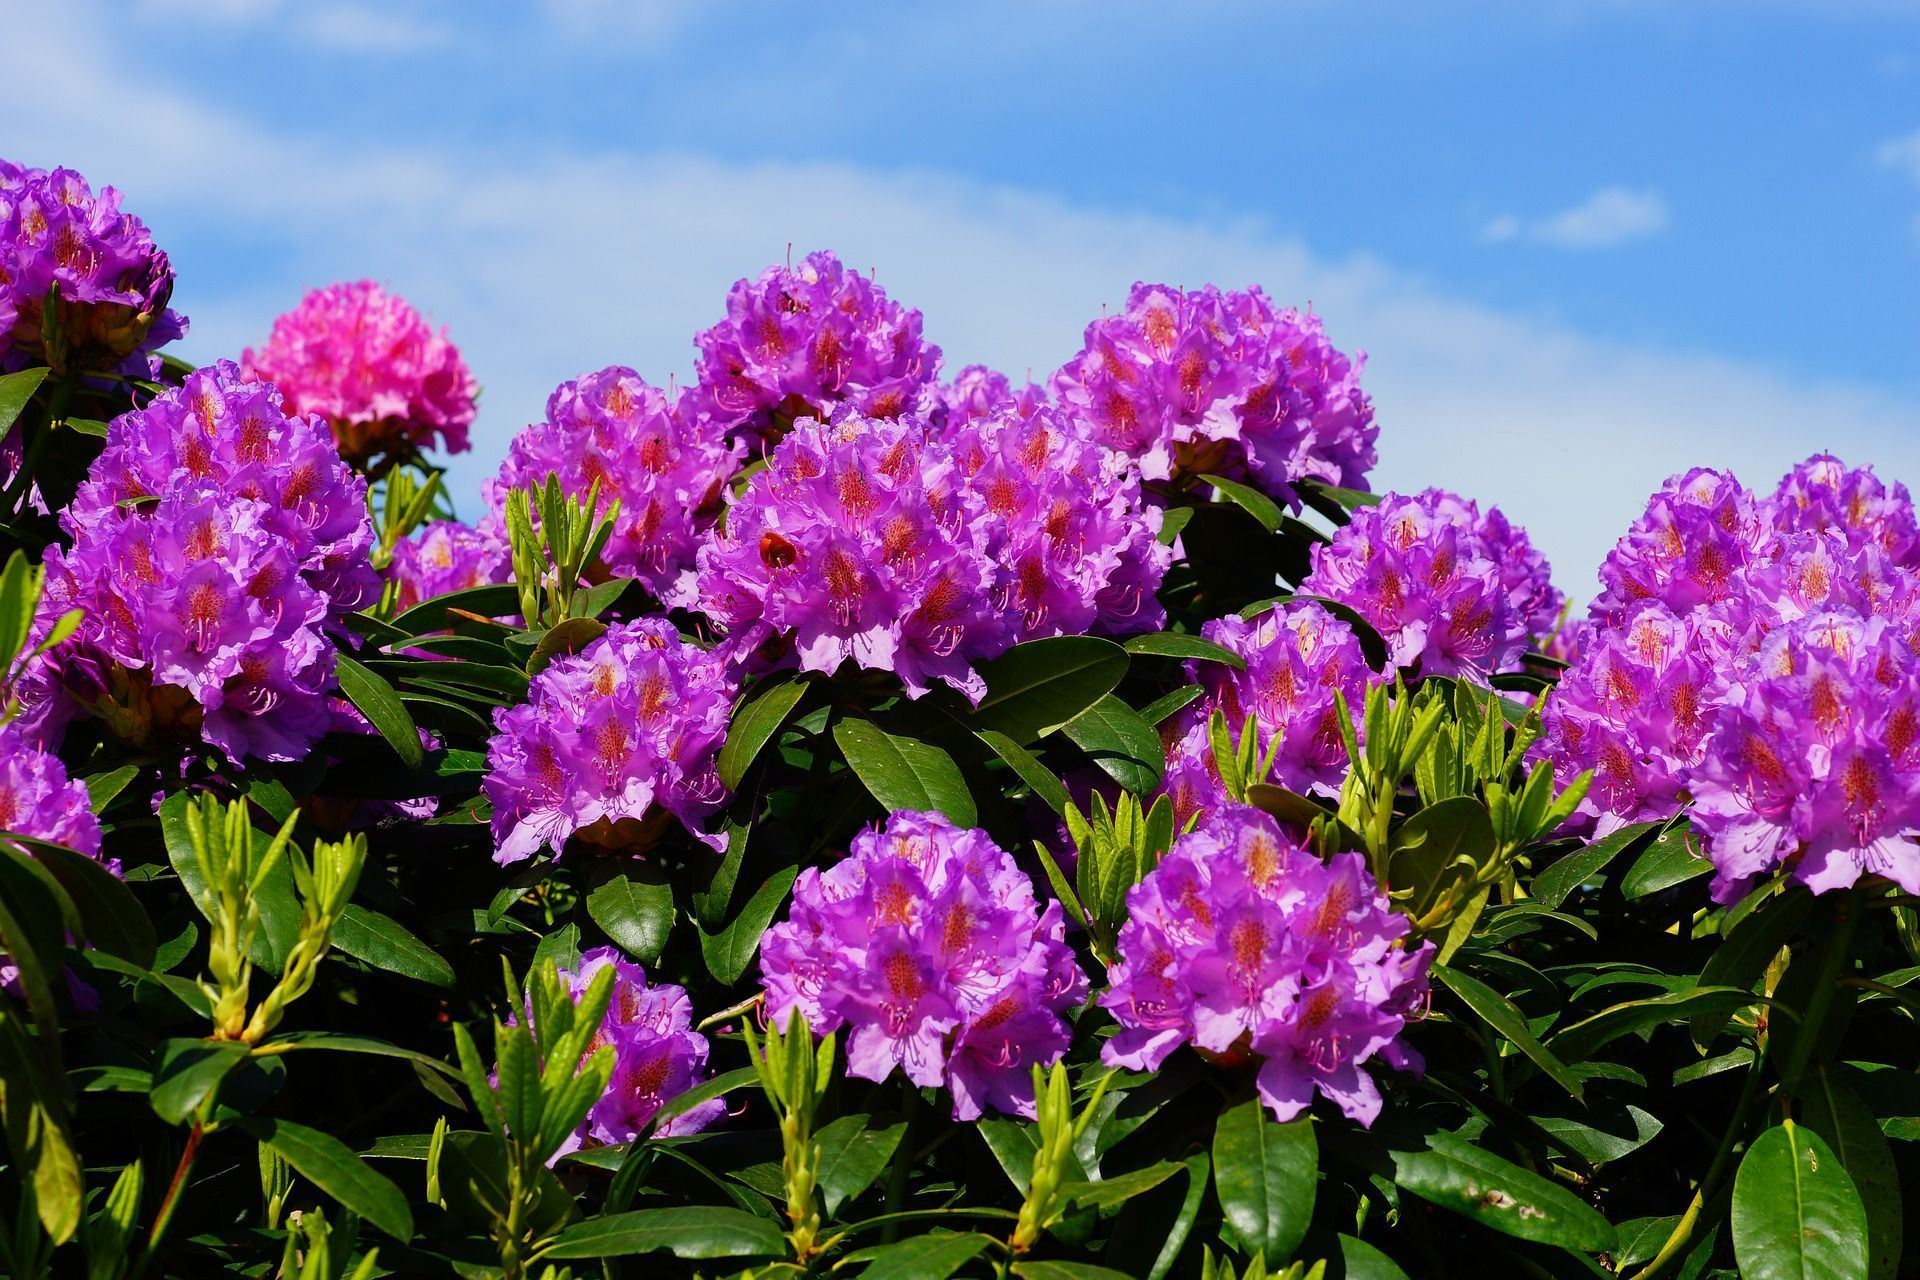 What S The Difference Between Rhododendrons And Azaleas Plants Rhododendron Azalea Flower